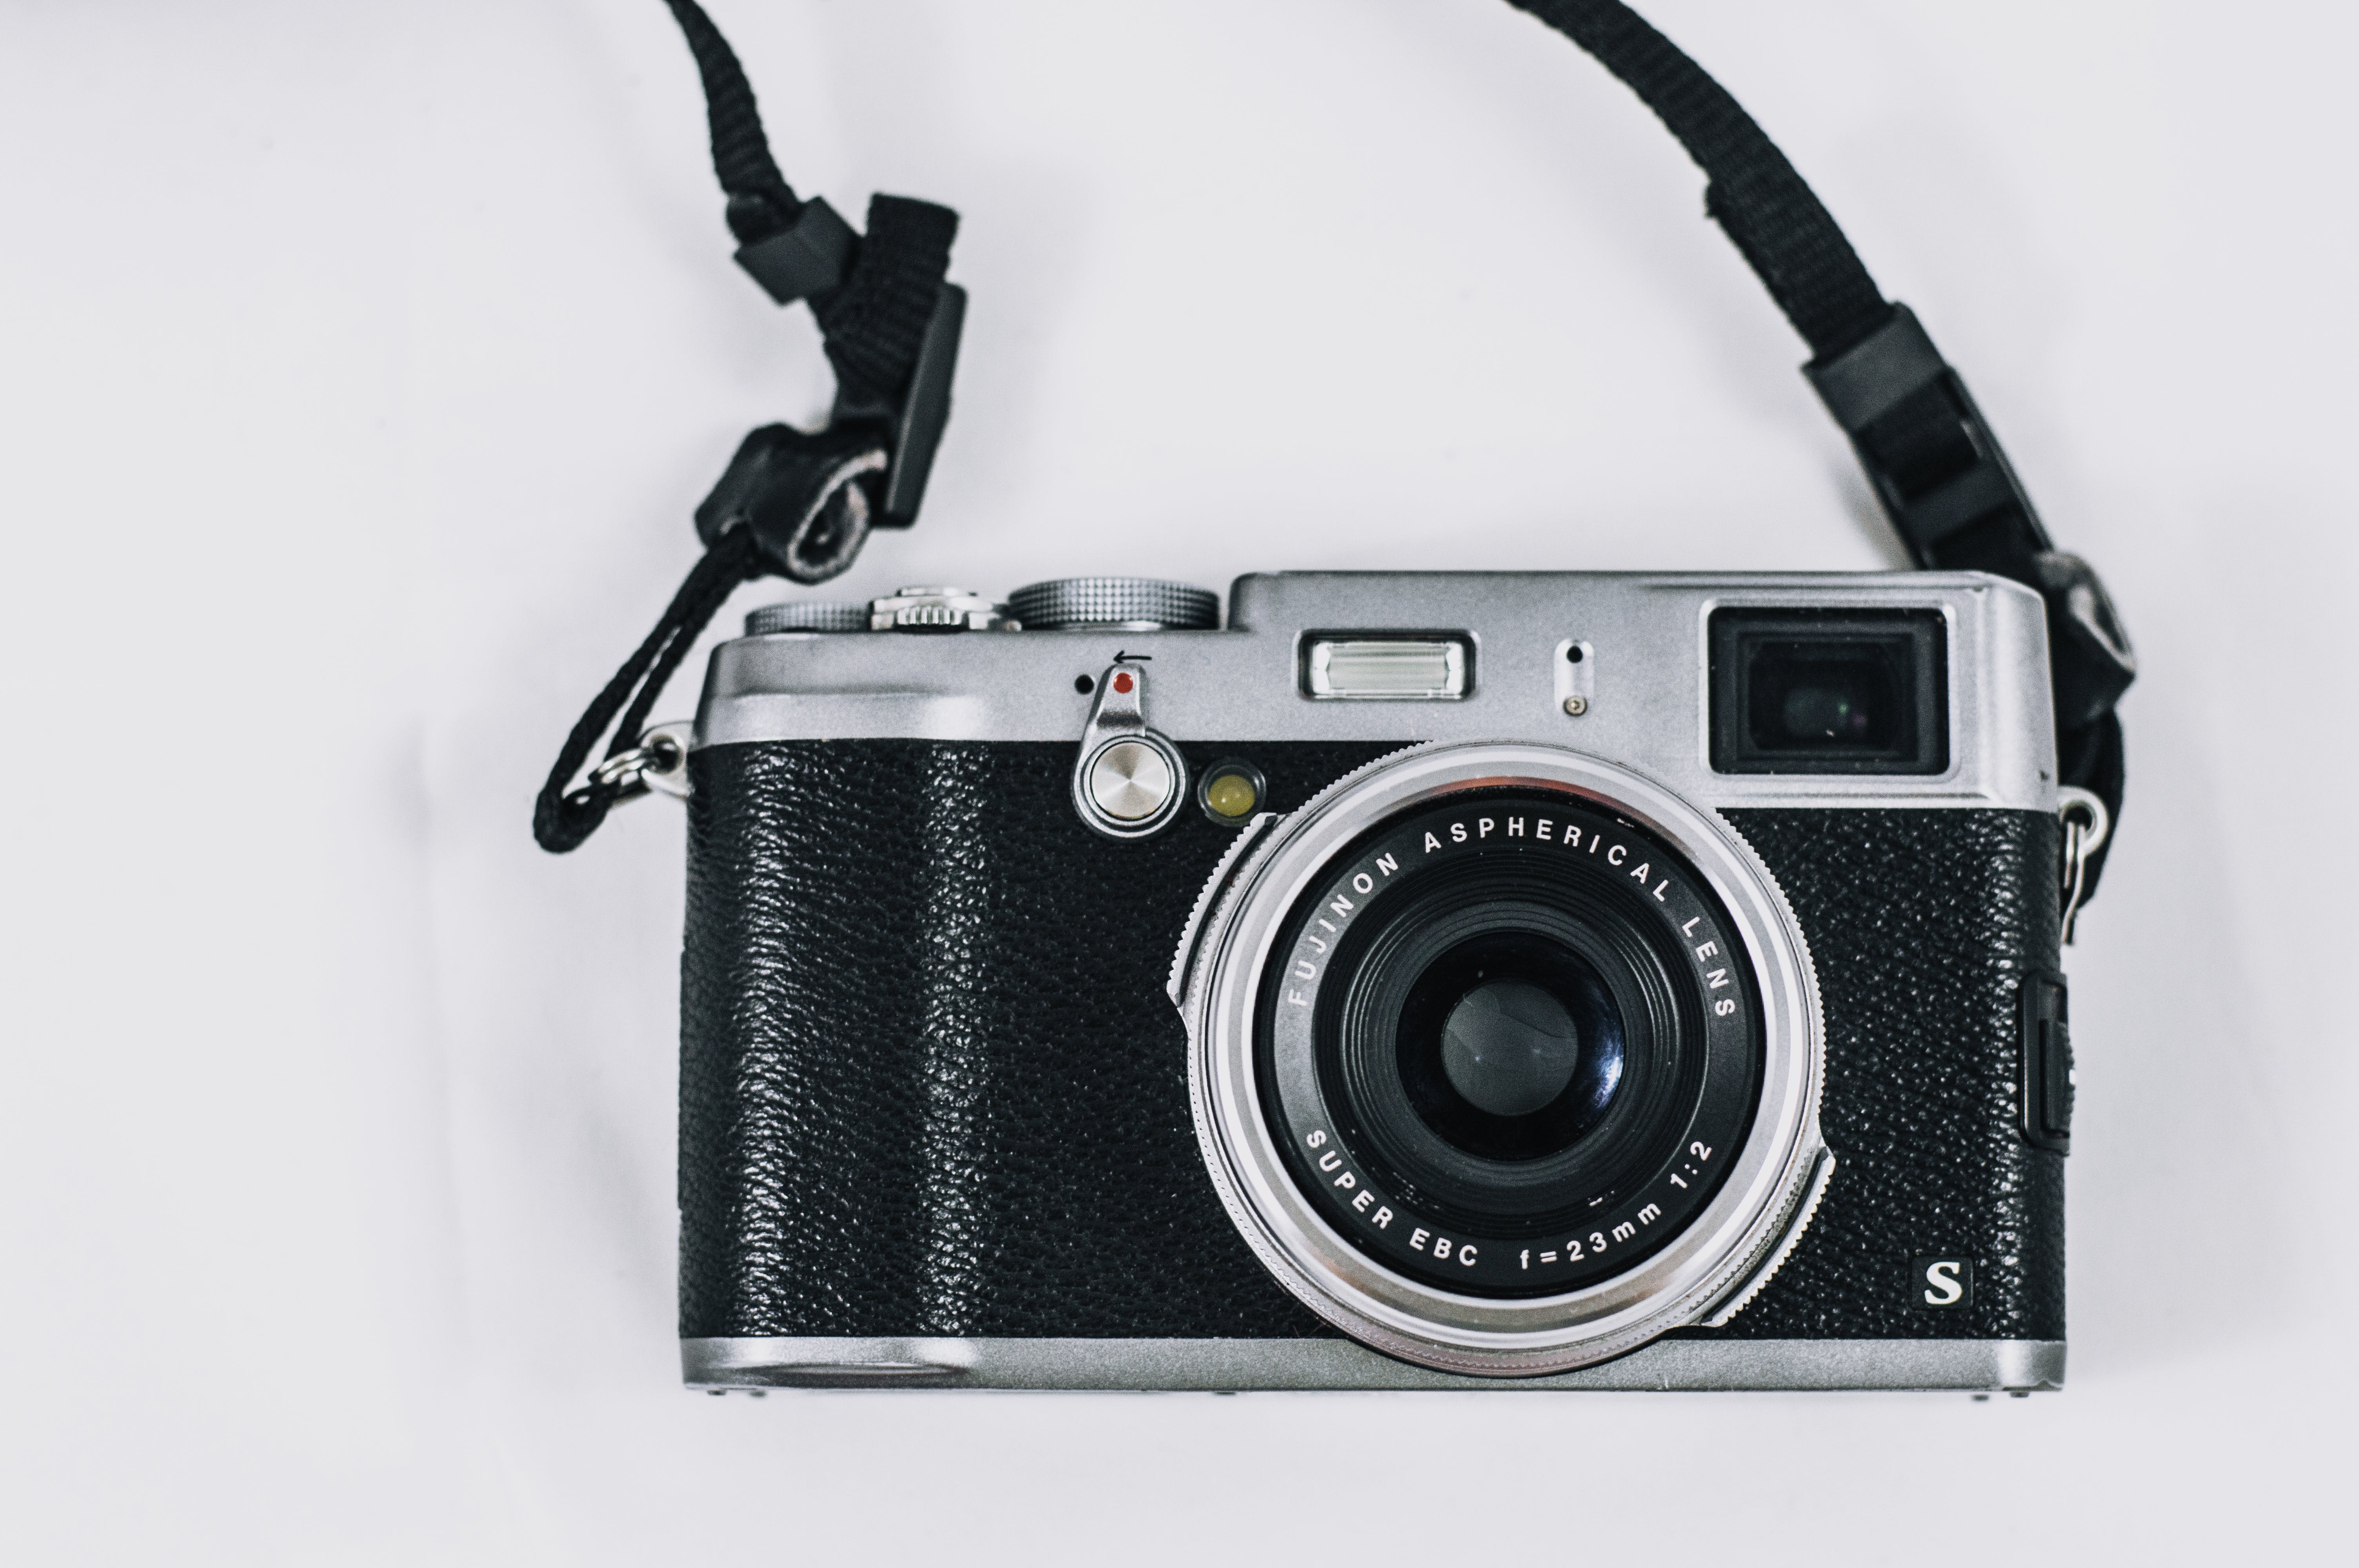 Close Up Photo of Vintage Black and Silver Single-lens Reflex Camera